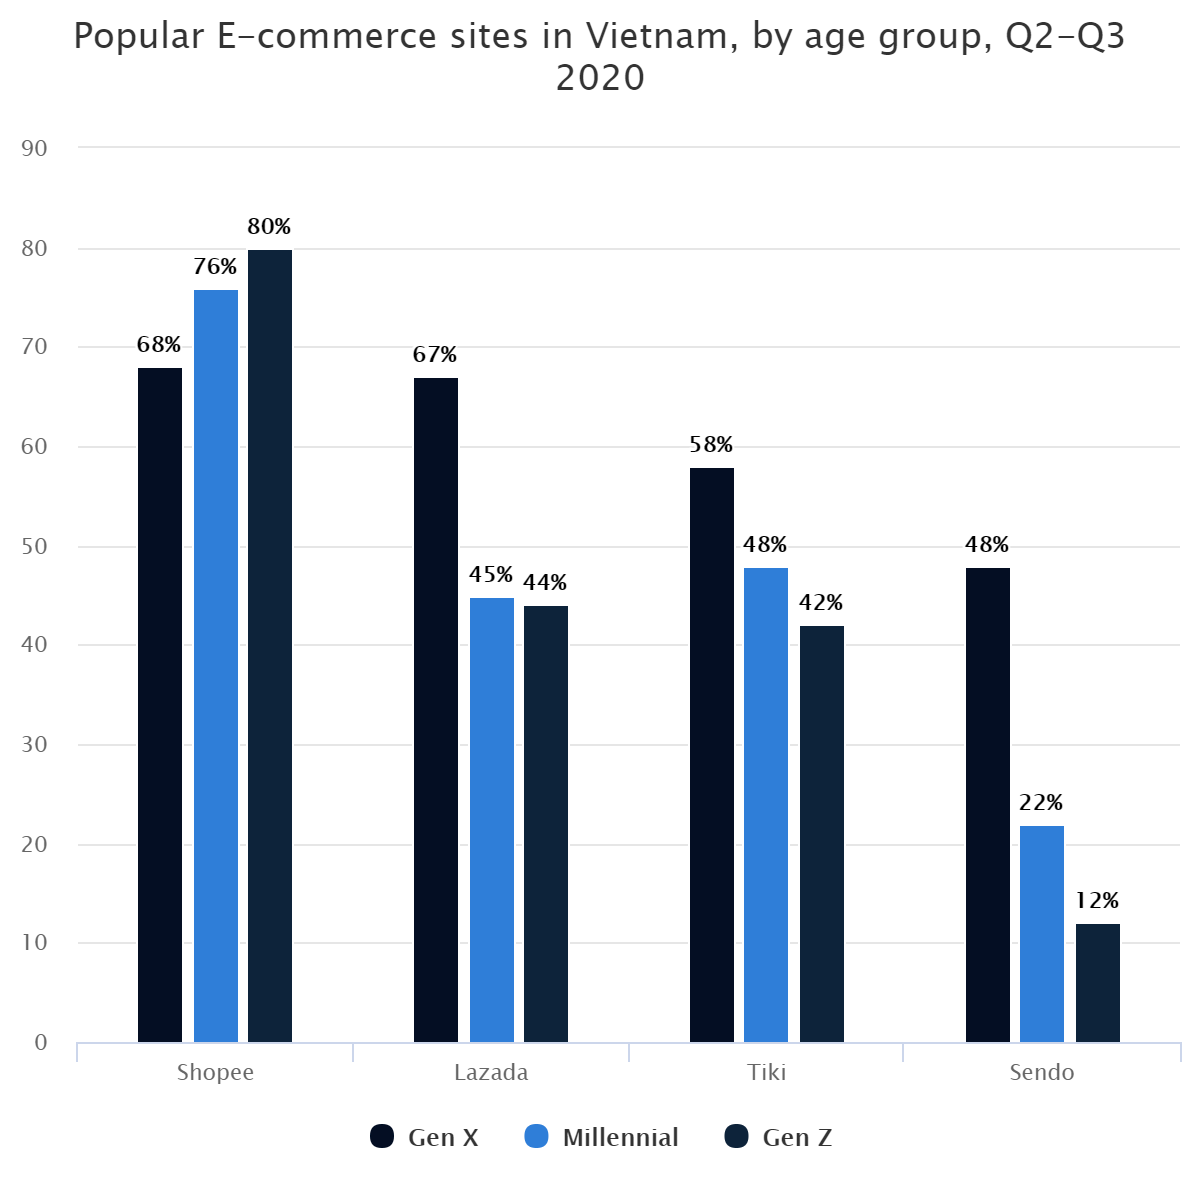 Popular E-commerce sites in Vietnam, by age group, Q2-Q3 2020